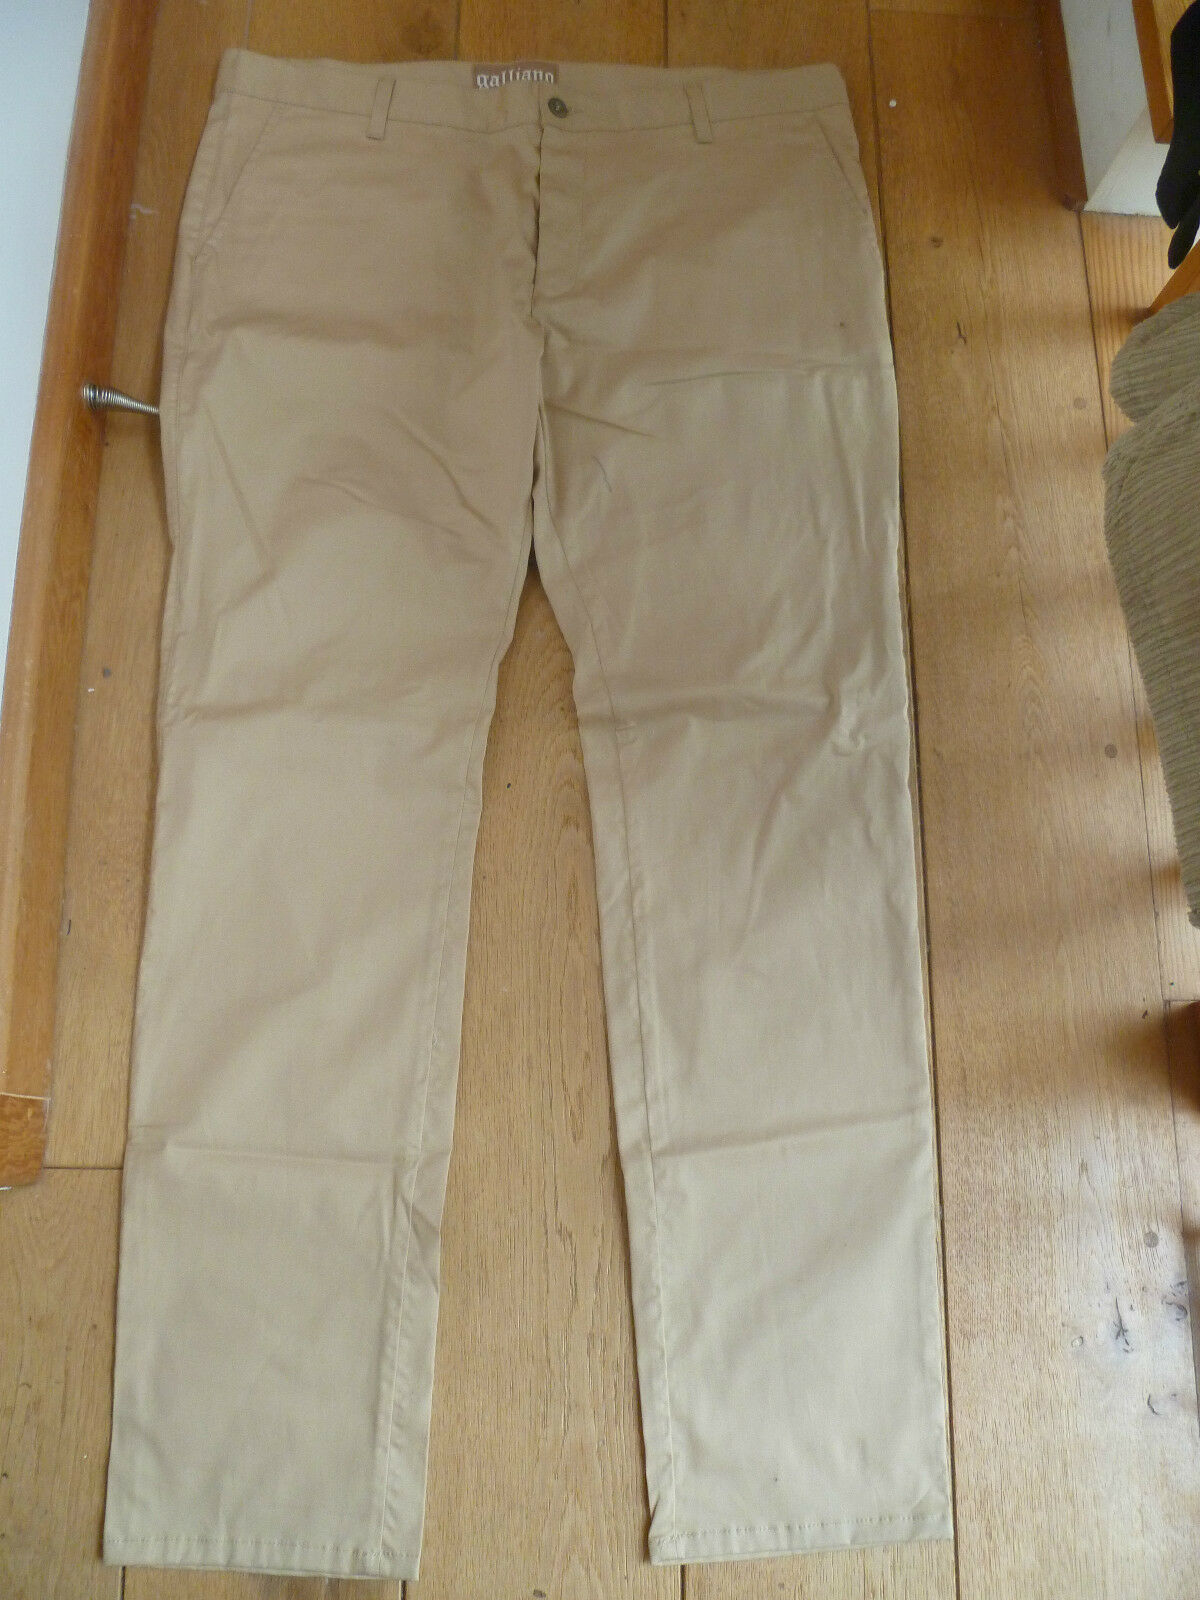 GALLIANO SMART CREAM BEIGE FLAT FRONT SUMMER TROUSERS US 42 XXXL BNWOT